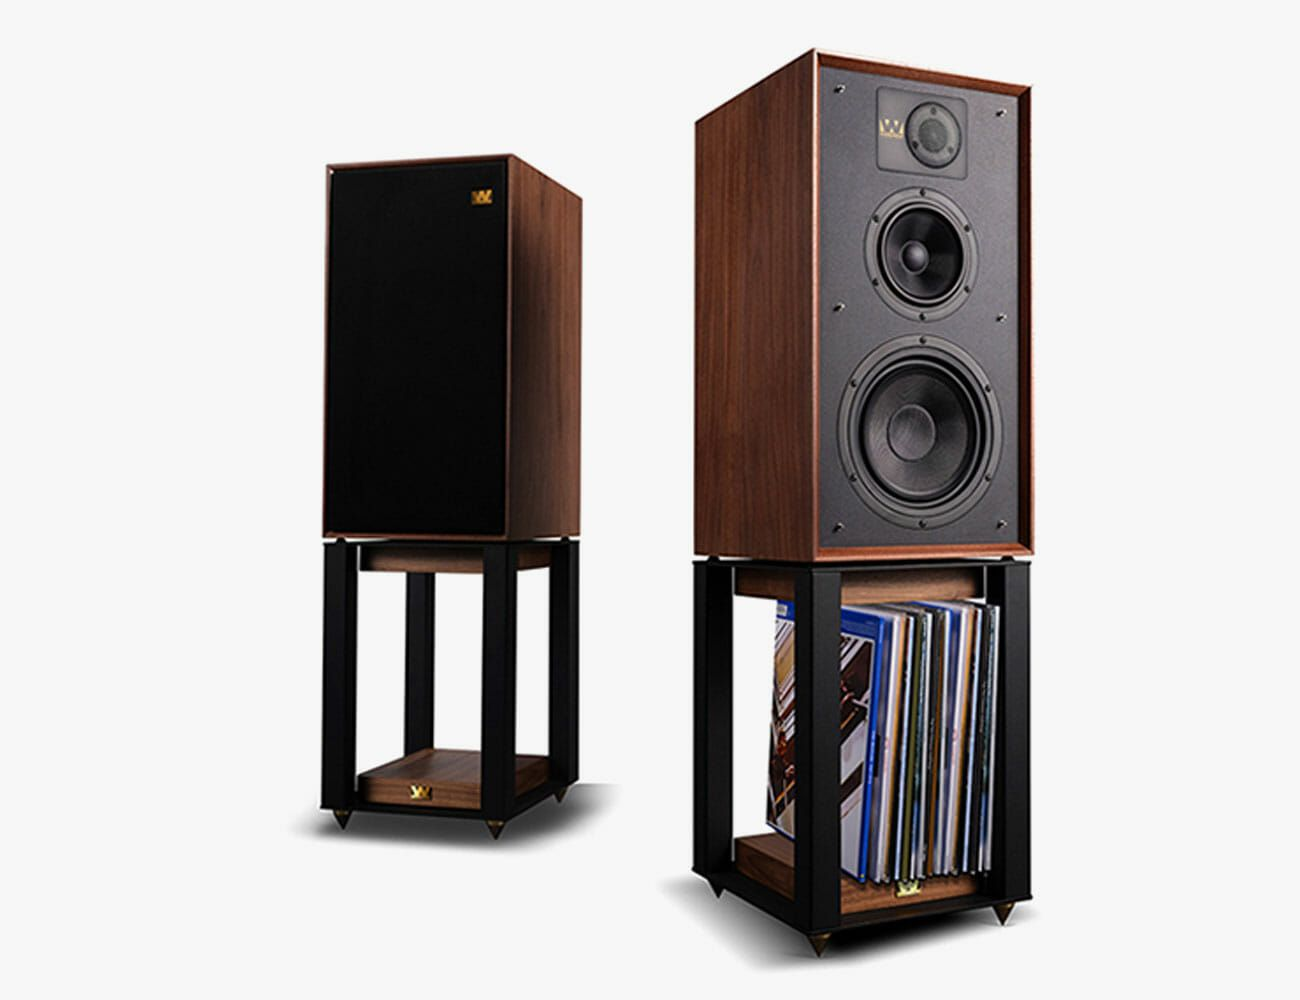 Space production subscriber Loudspeakers